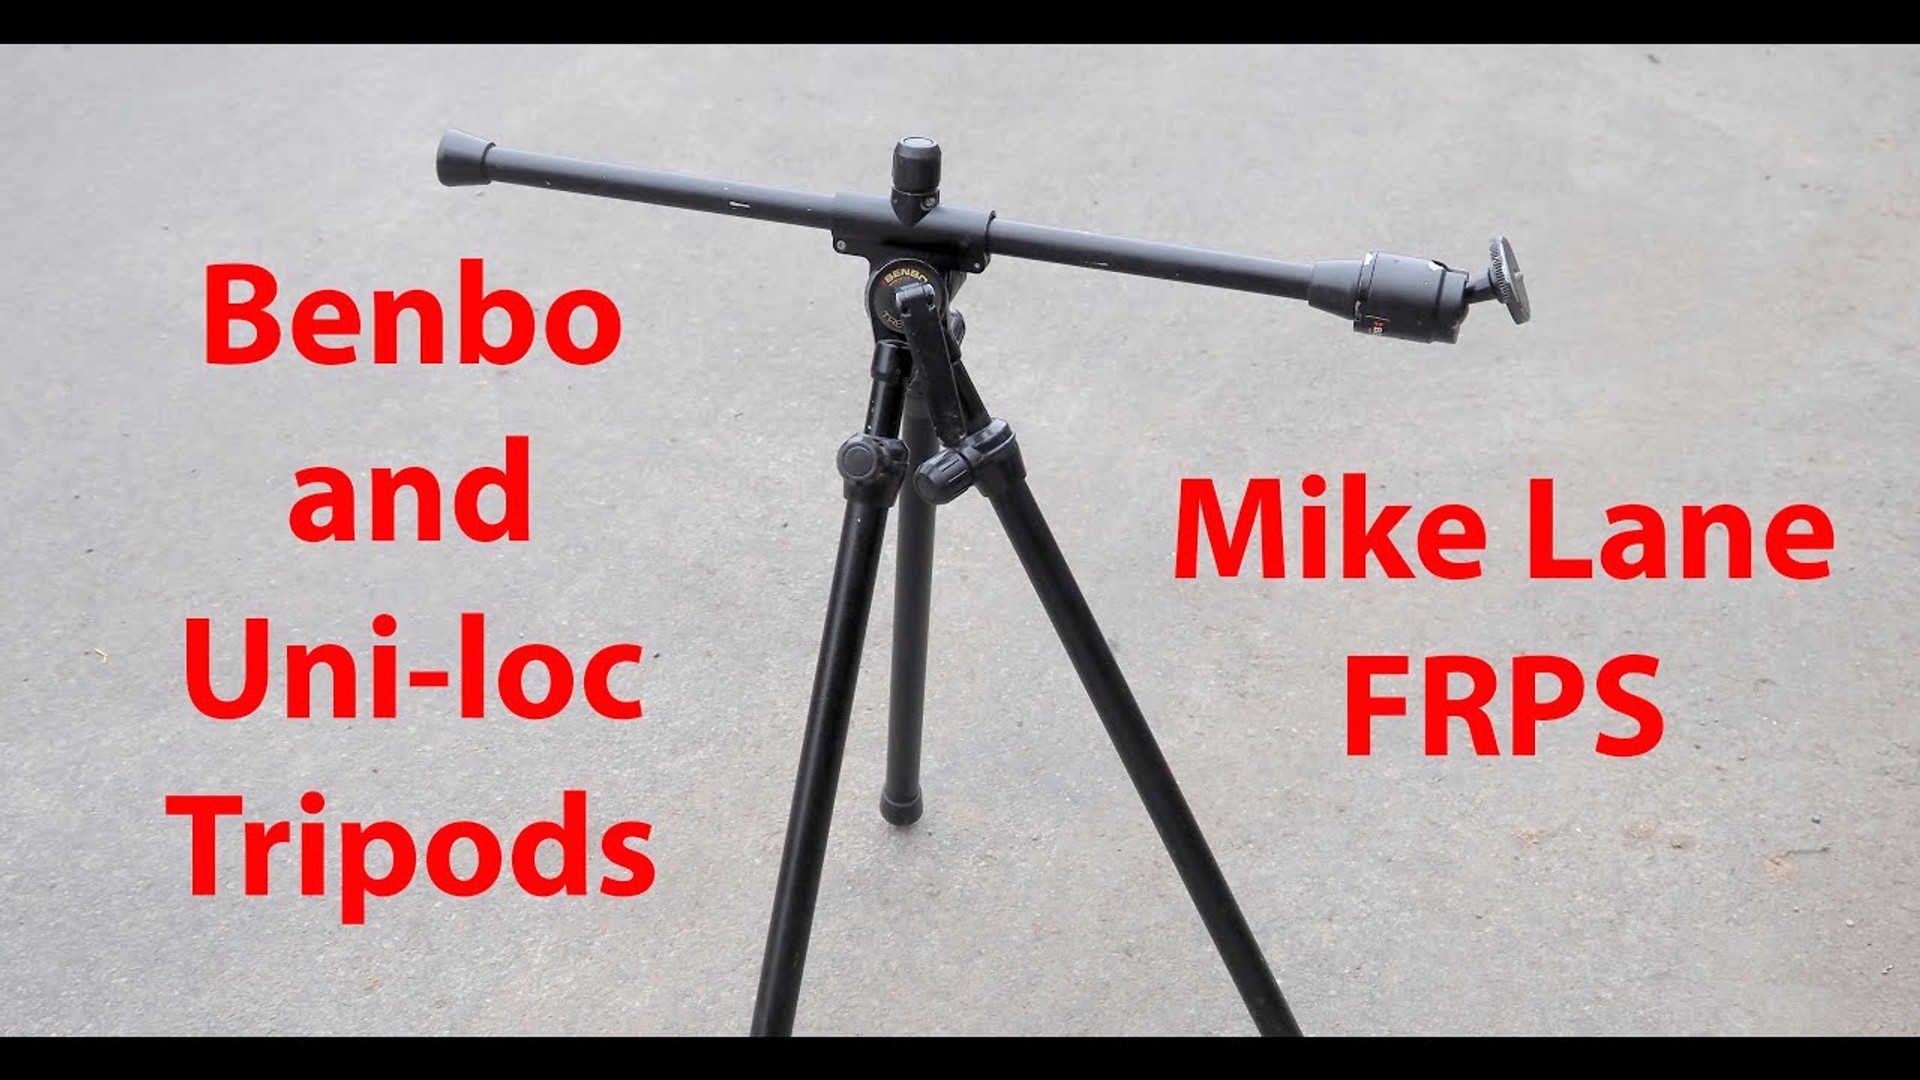 Benbo and Uni-loc tripods